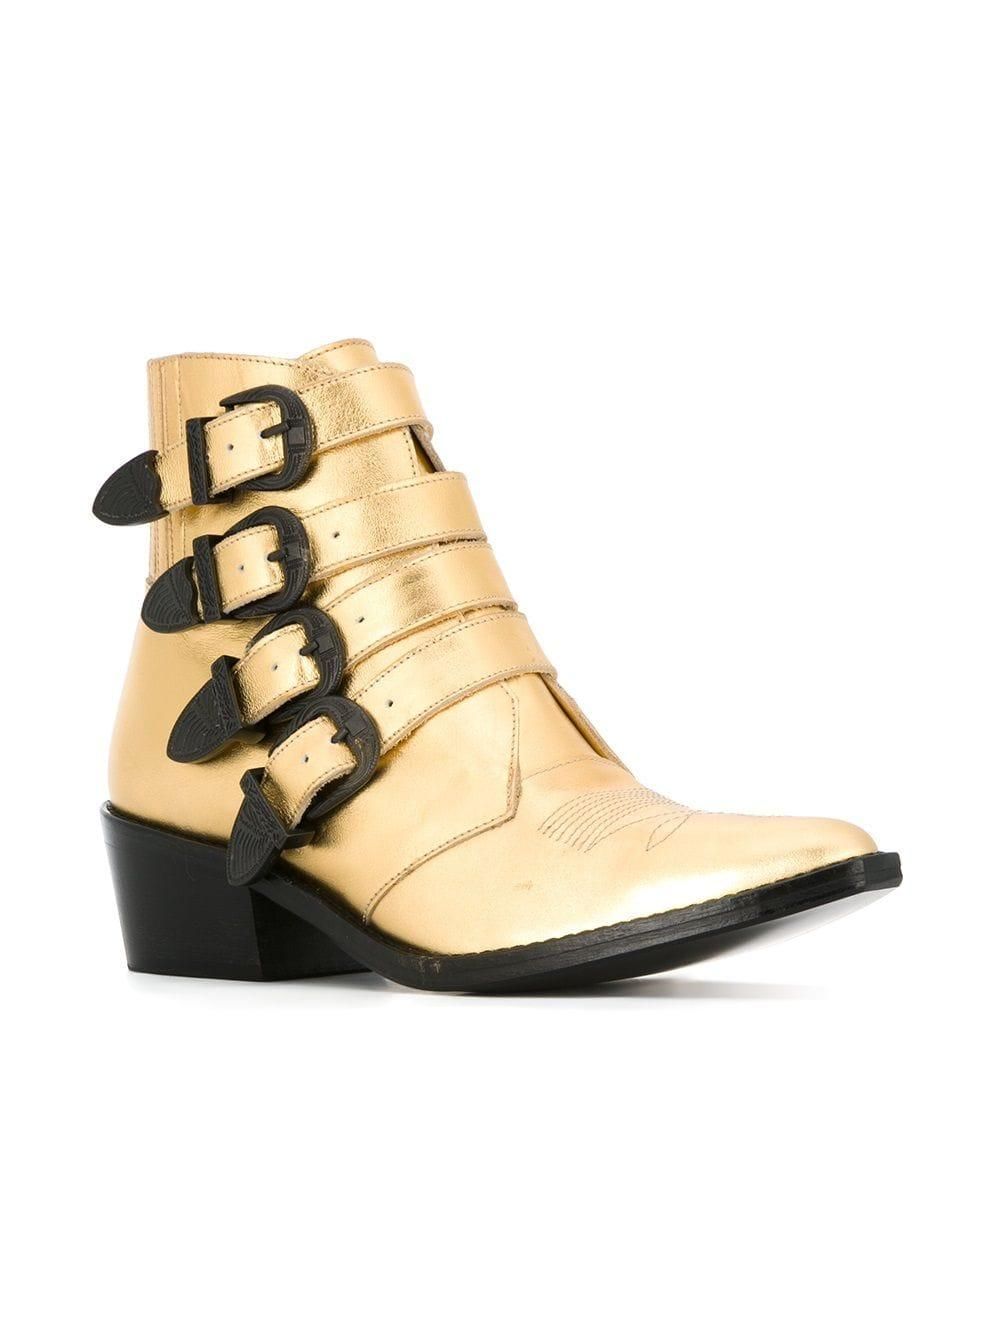 Toga Multi Buckle Leather Ankle Boots in Metallic (Black)